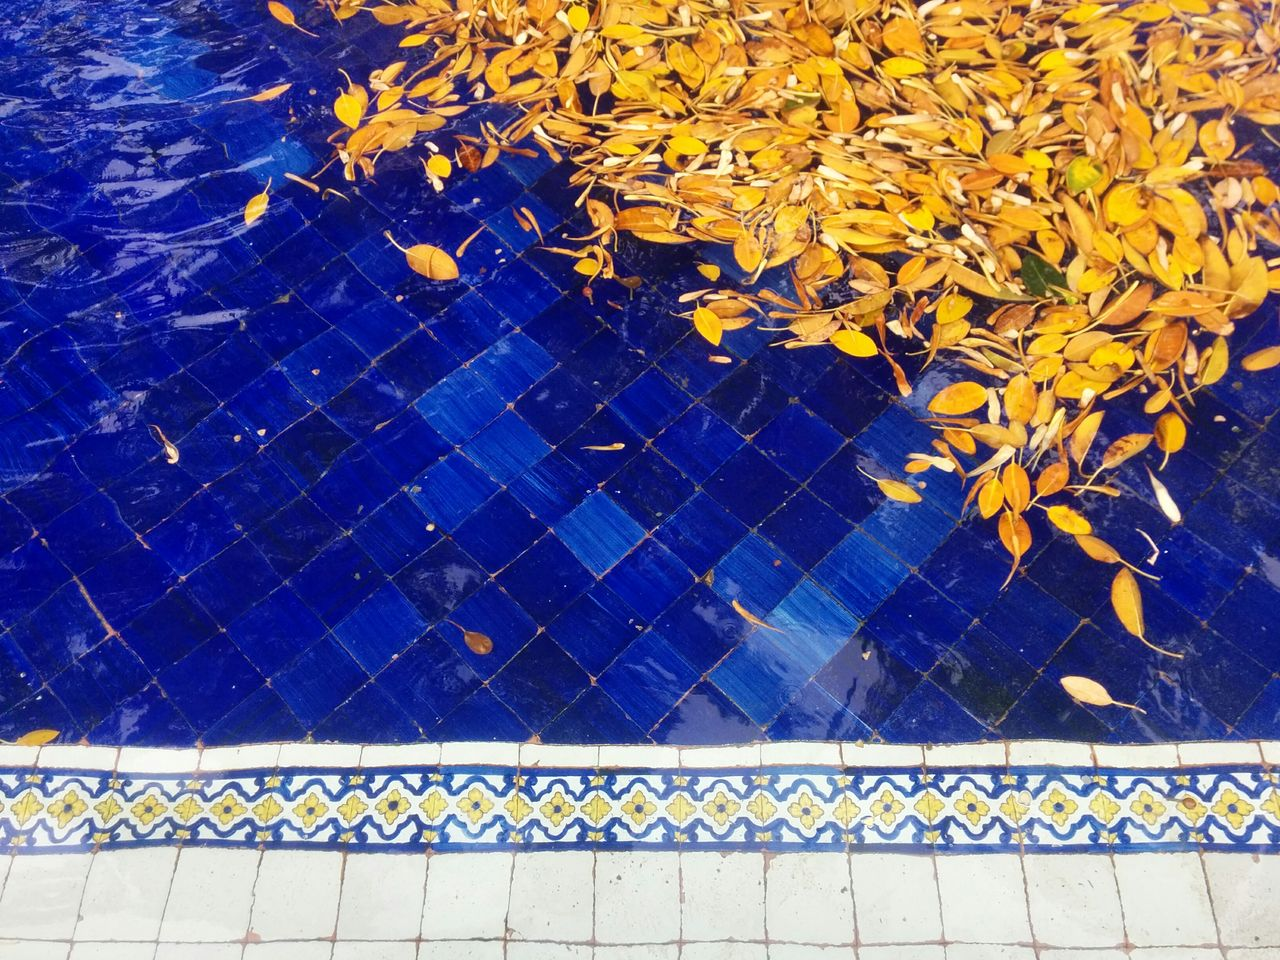 Leaves in the Colorful Tiles Fountain. The Purist (no Edit, No Filter) Colorsplash EyeEm Best Shots Color Explosion Natural Composition